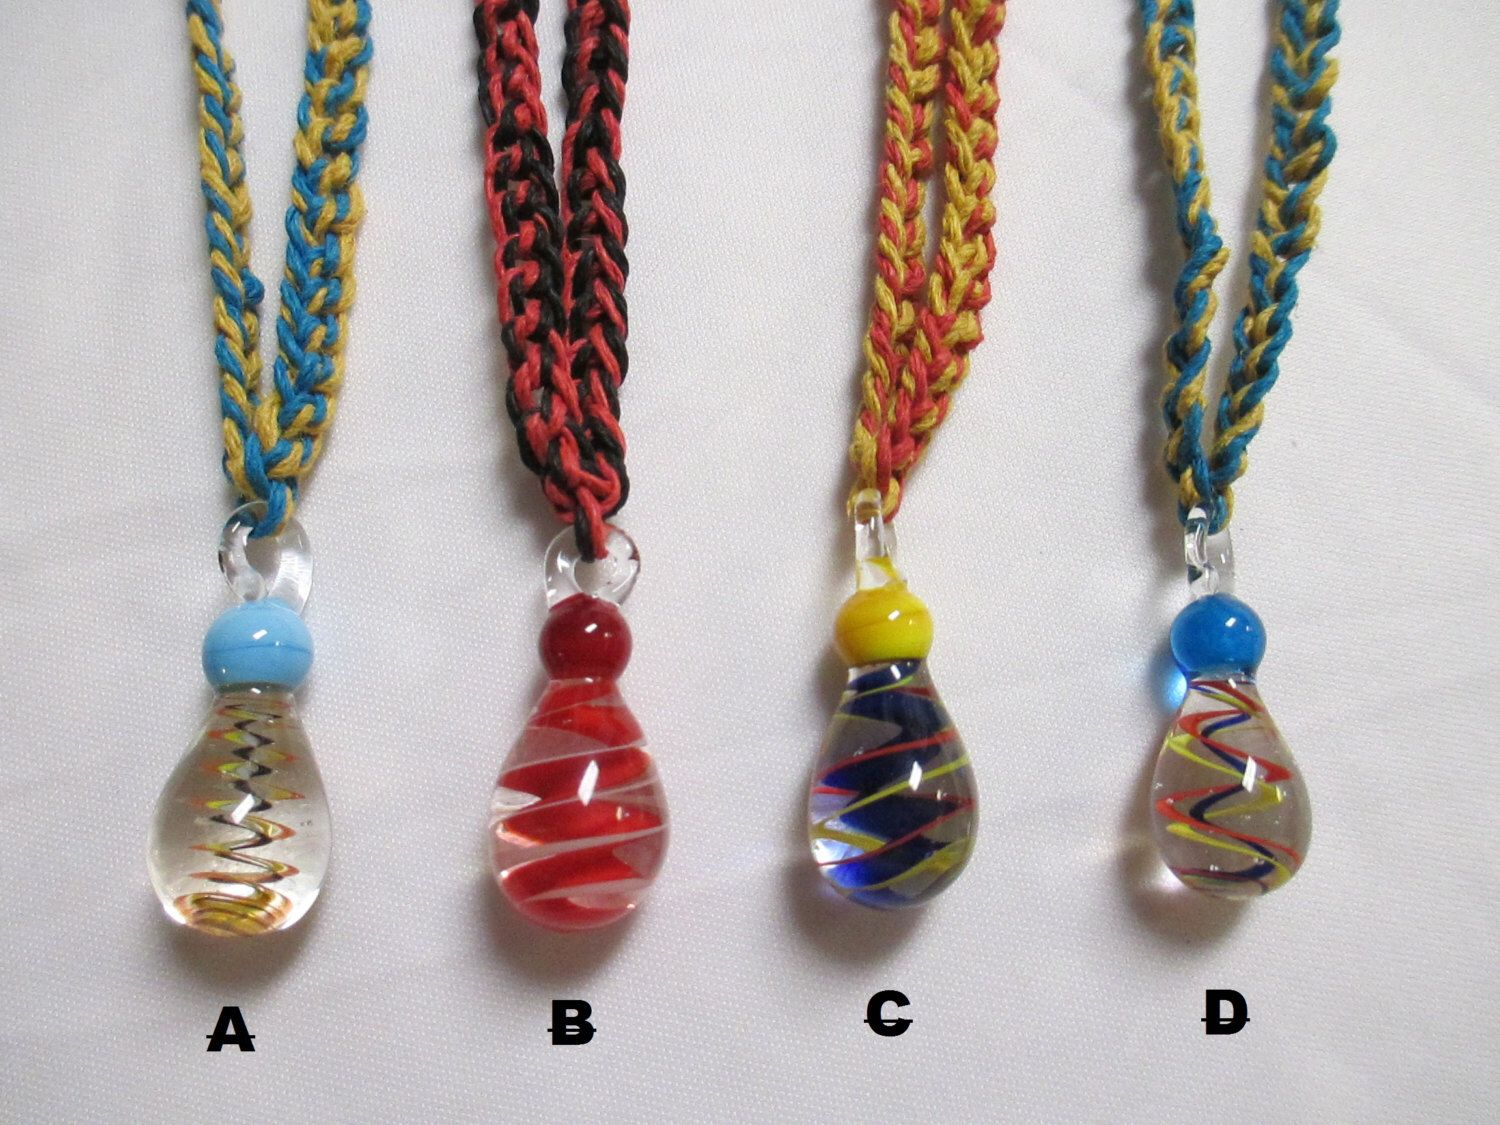 Jumbo swirl glass pendant hemp necklace 1 you choose color by jumbo swirl glass pendant hemp necklace 1 you choose color mozeypictures